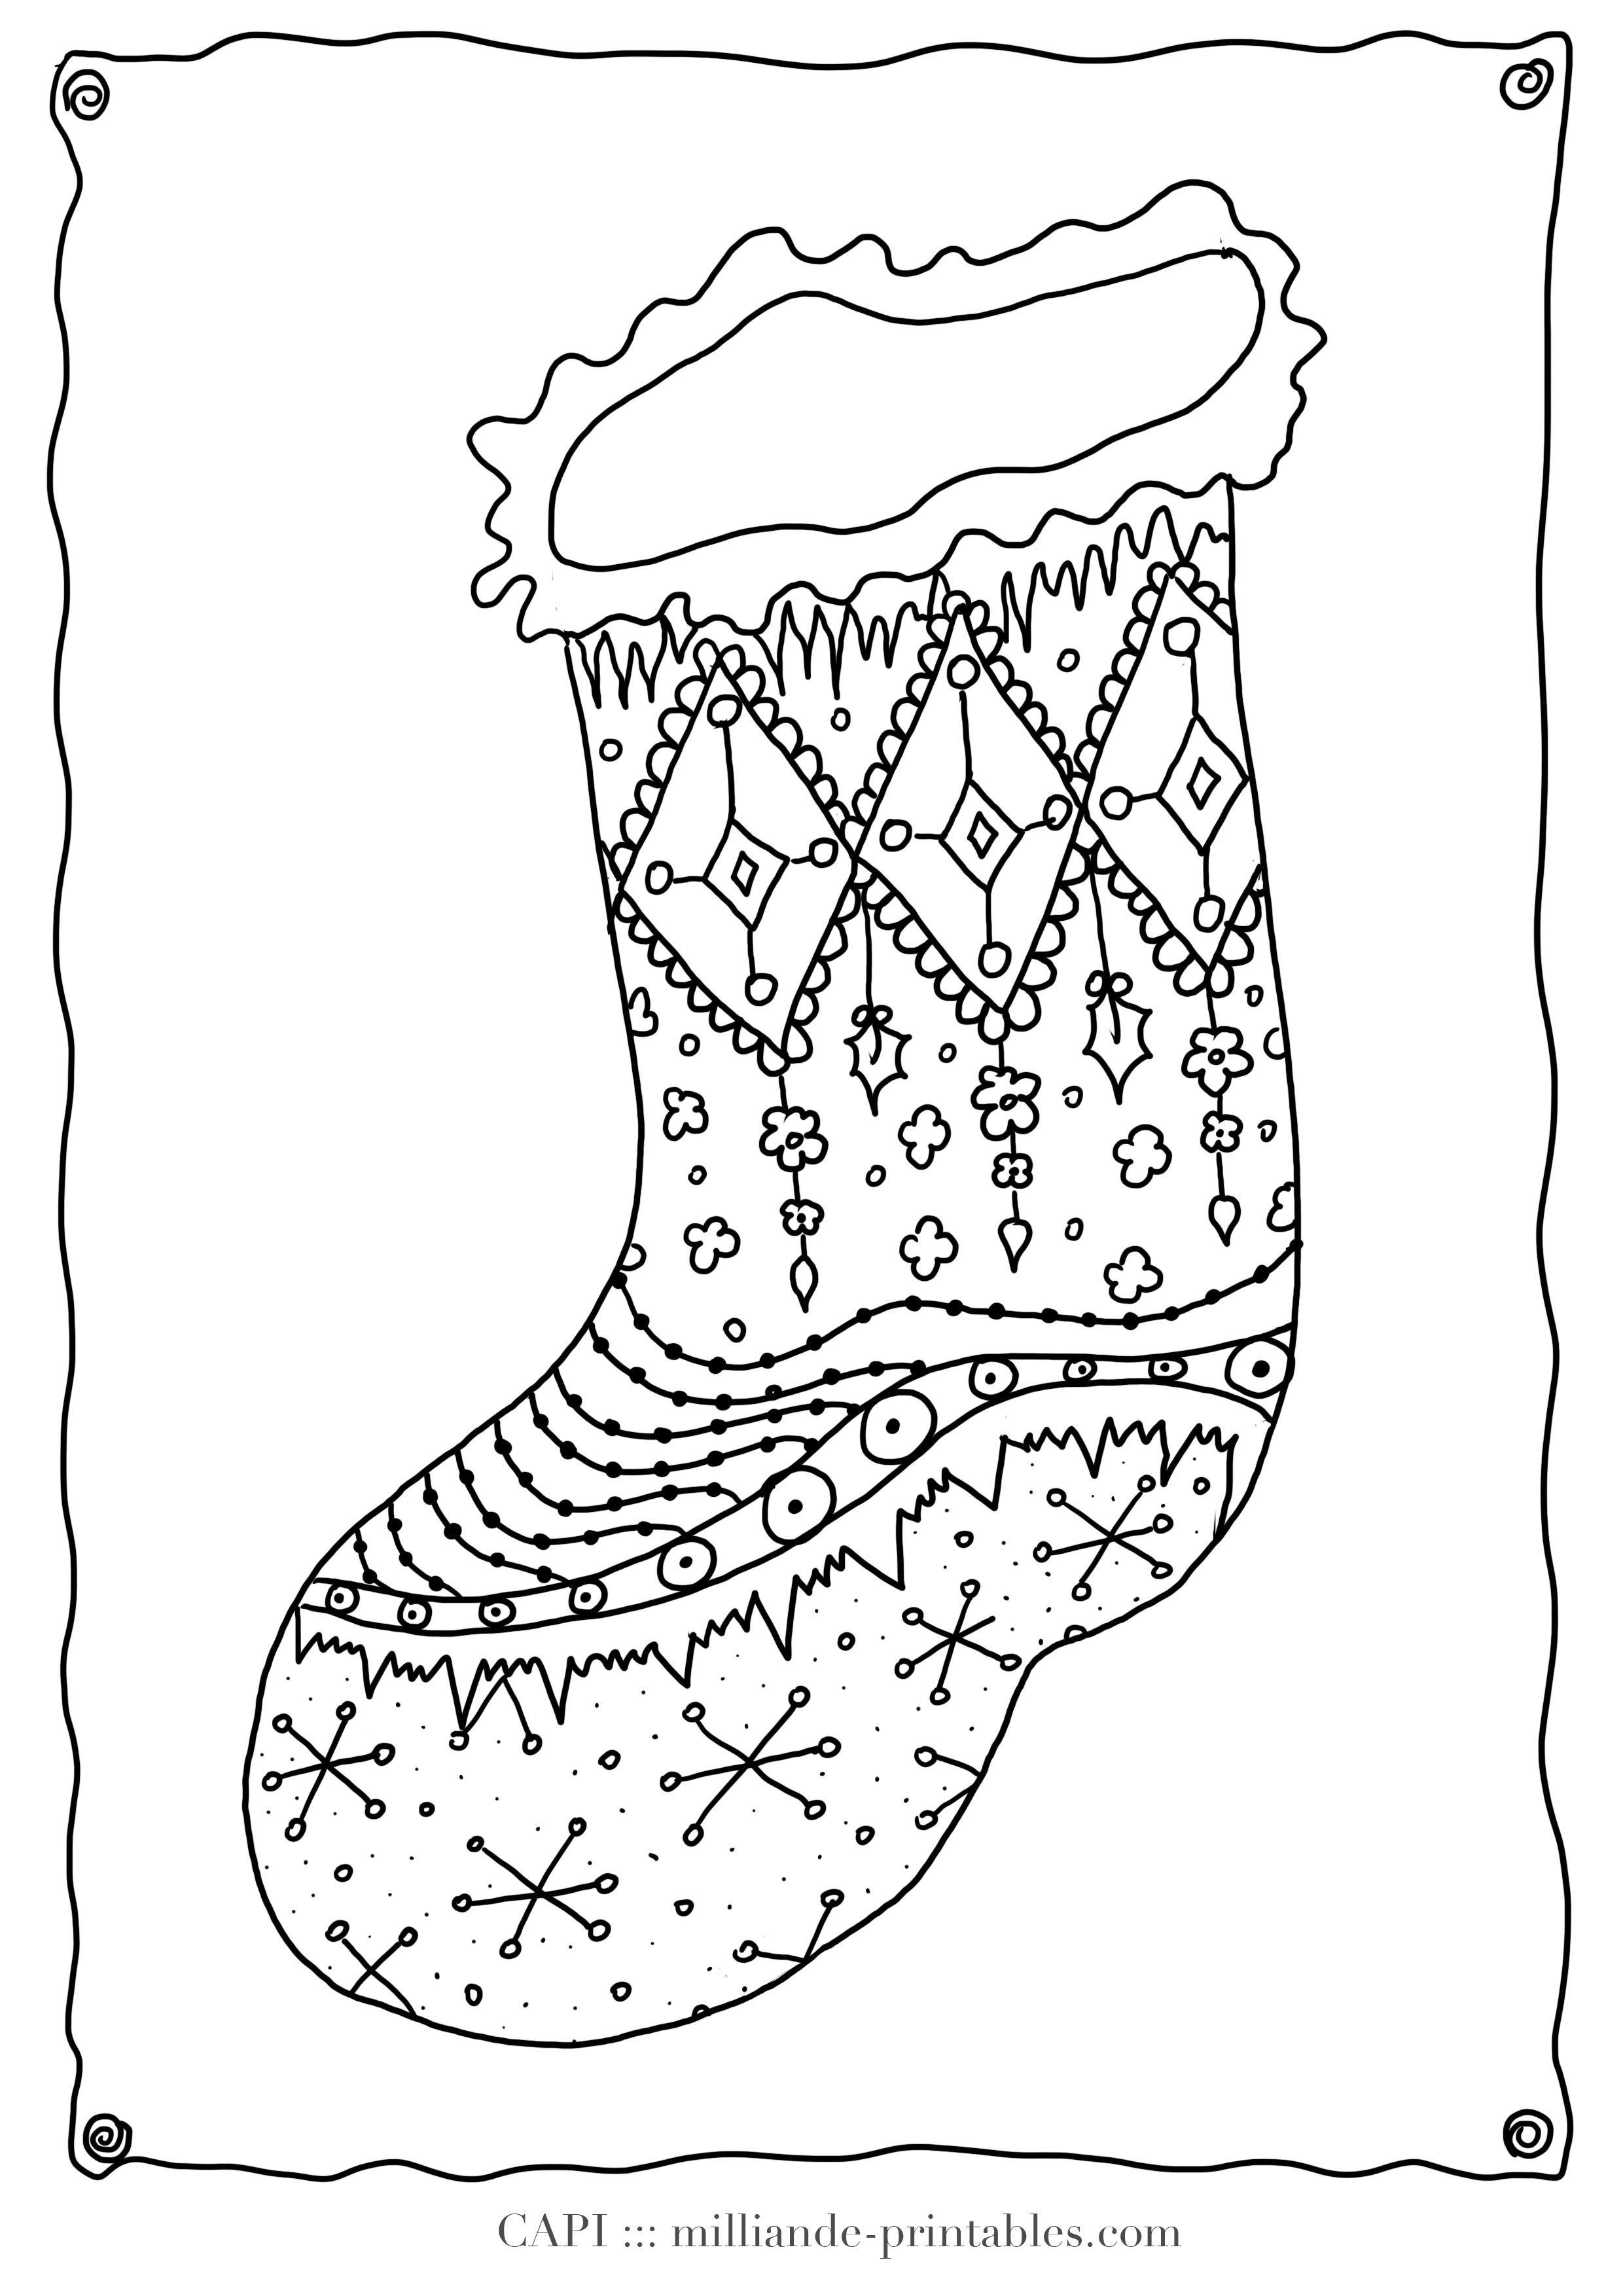 Christmas Coloring Stockings Template With Detailed Pages Bing Images Design Pinterest